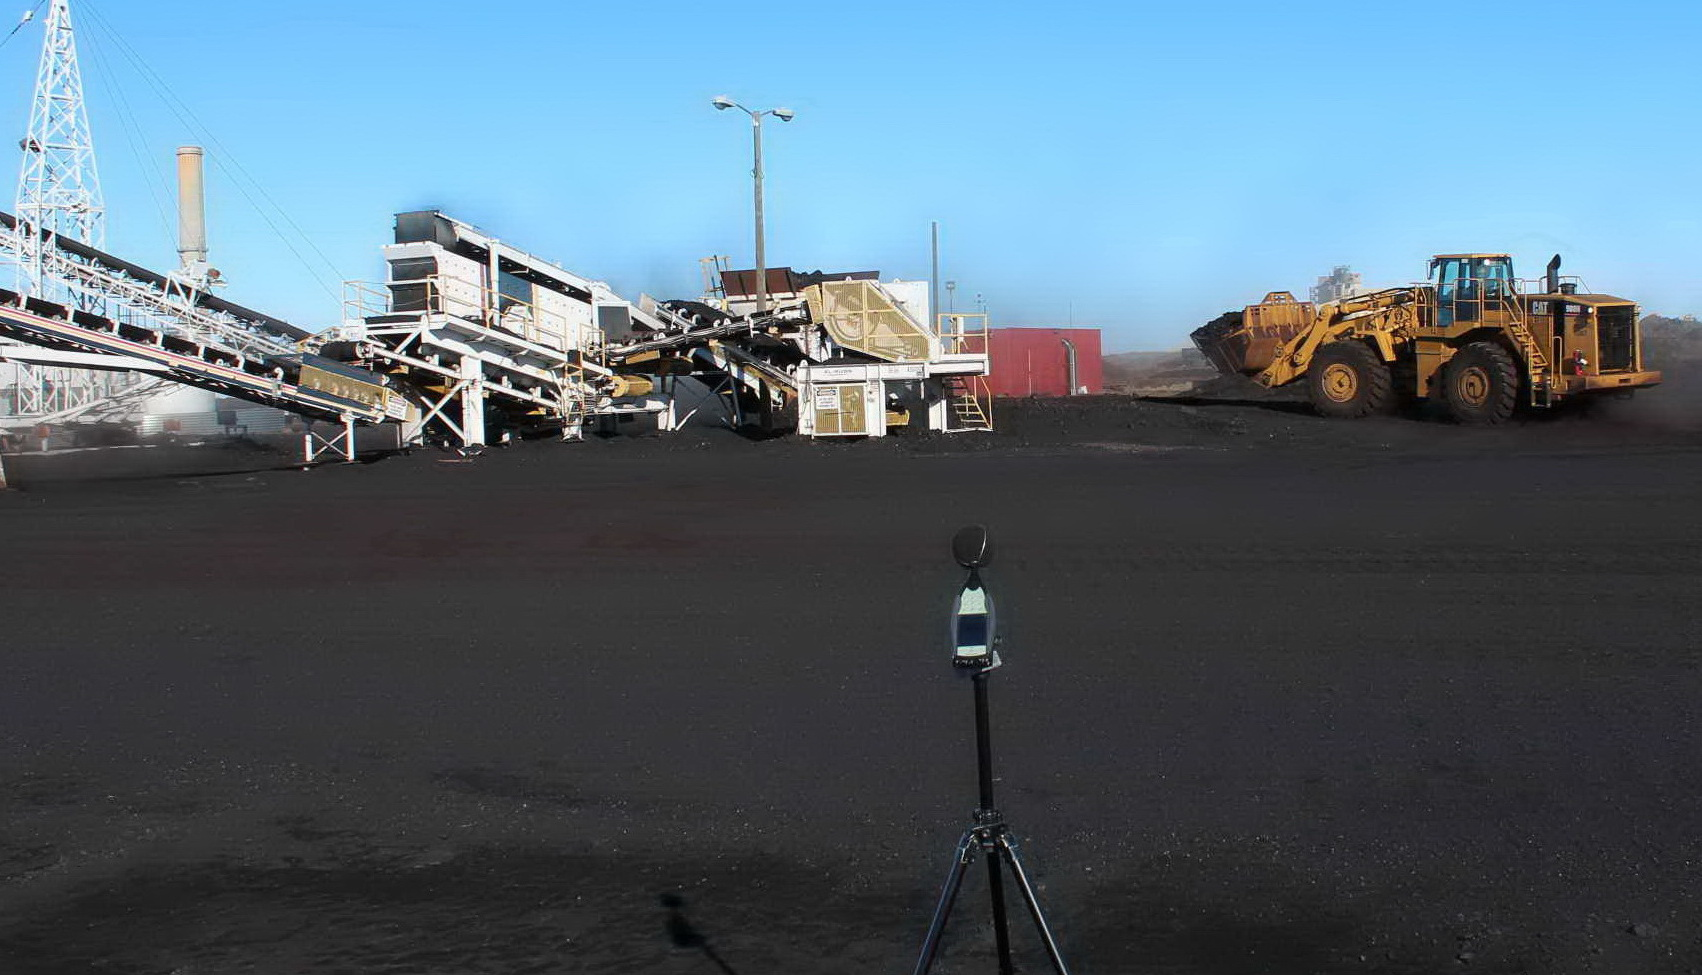 Noise Measurements of Coal Crushing Operation